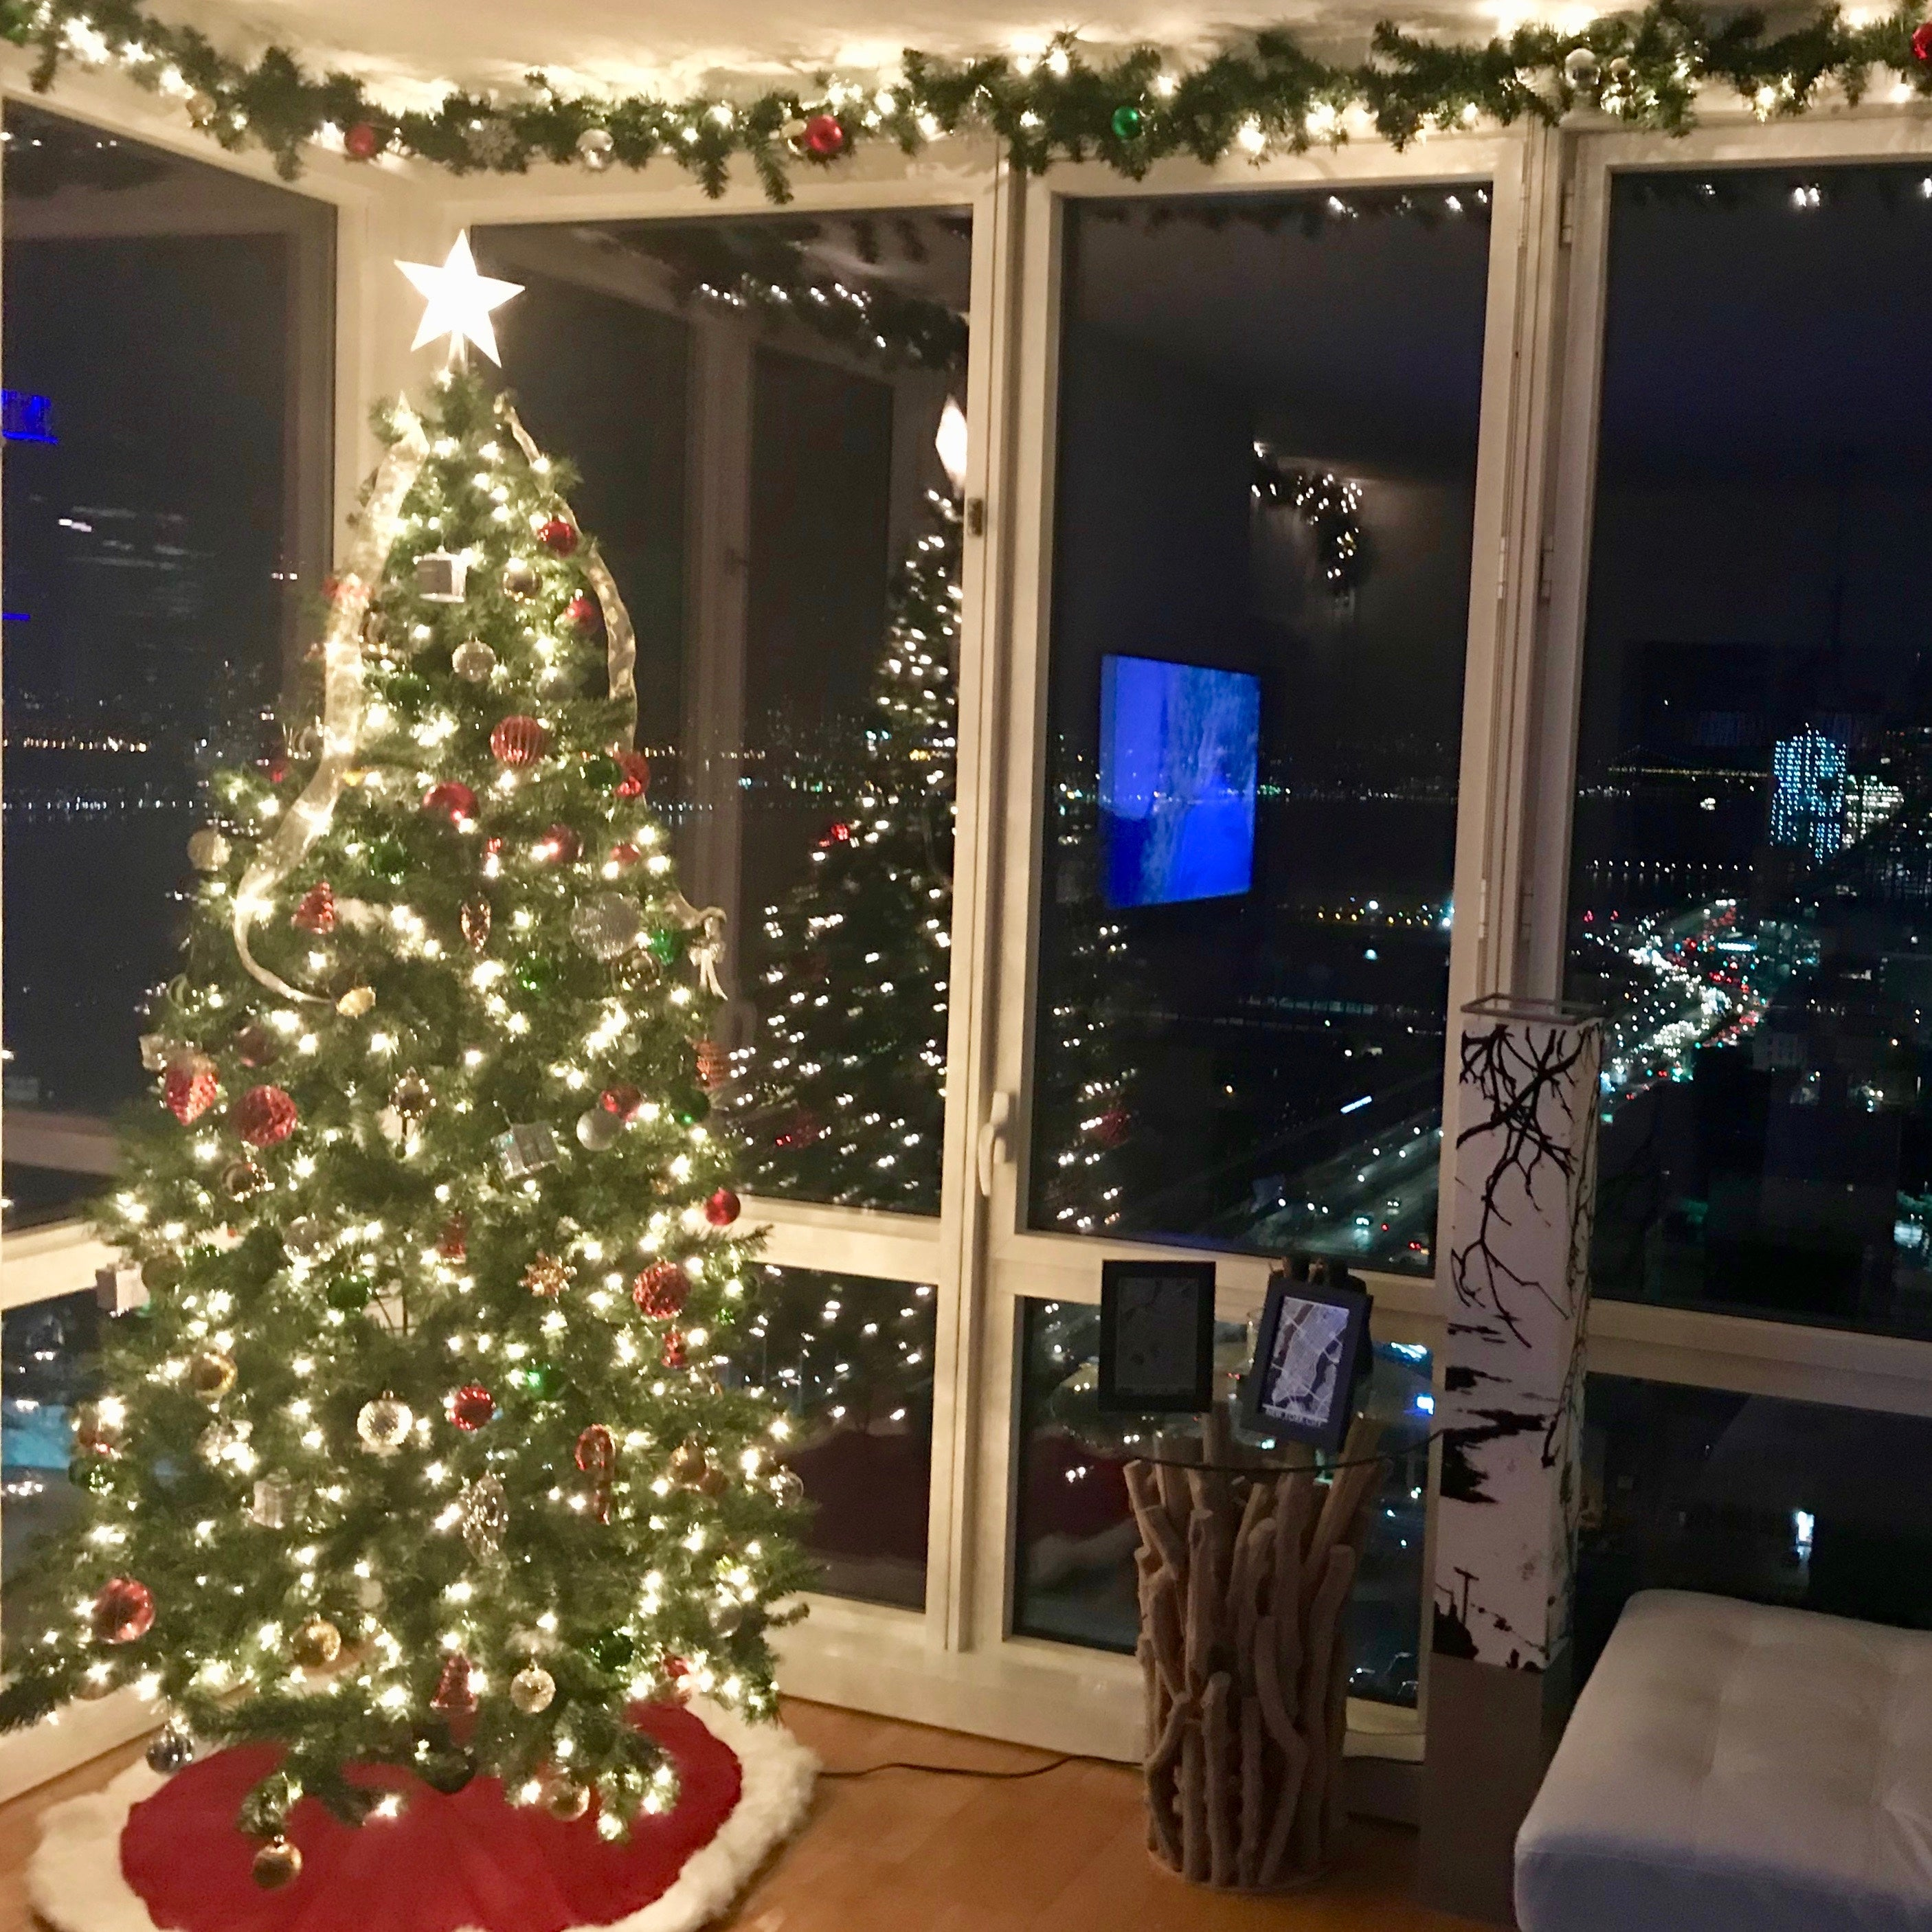 Decorated artificial Christmas tree and garland in residential living room